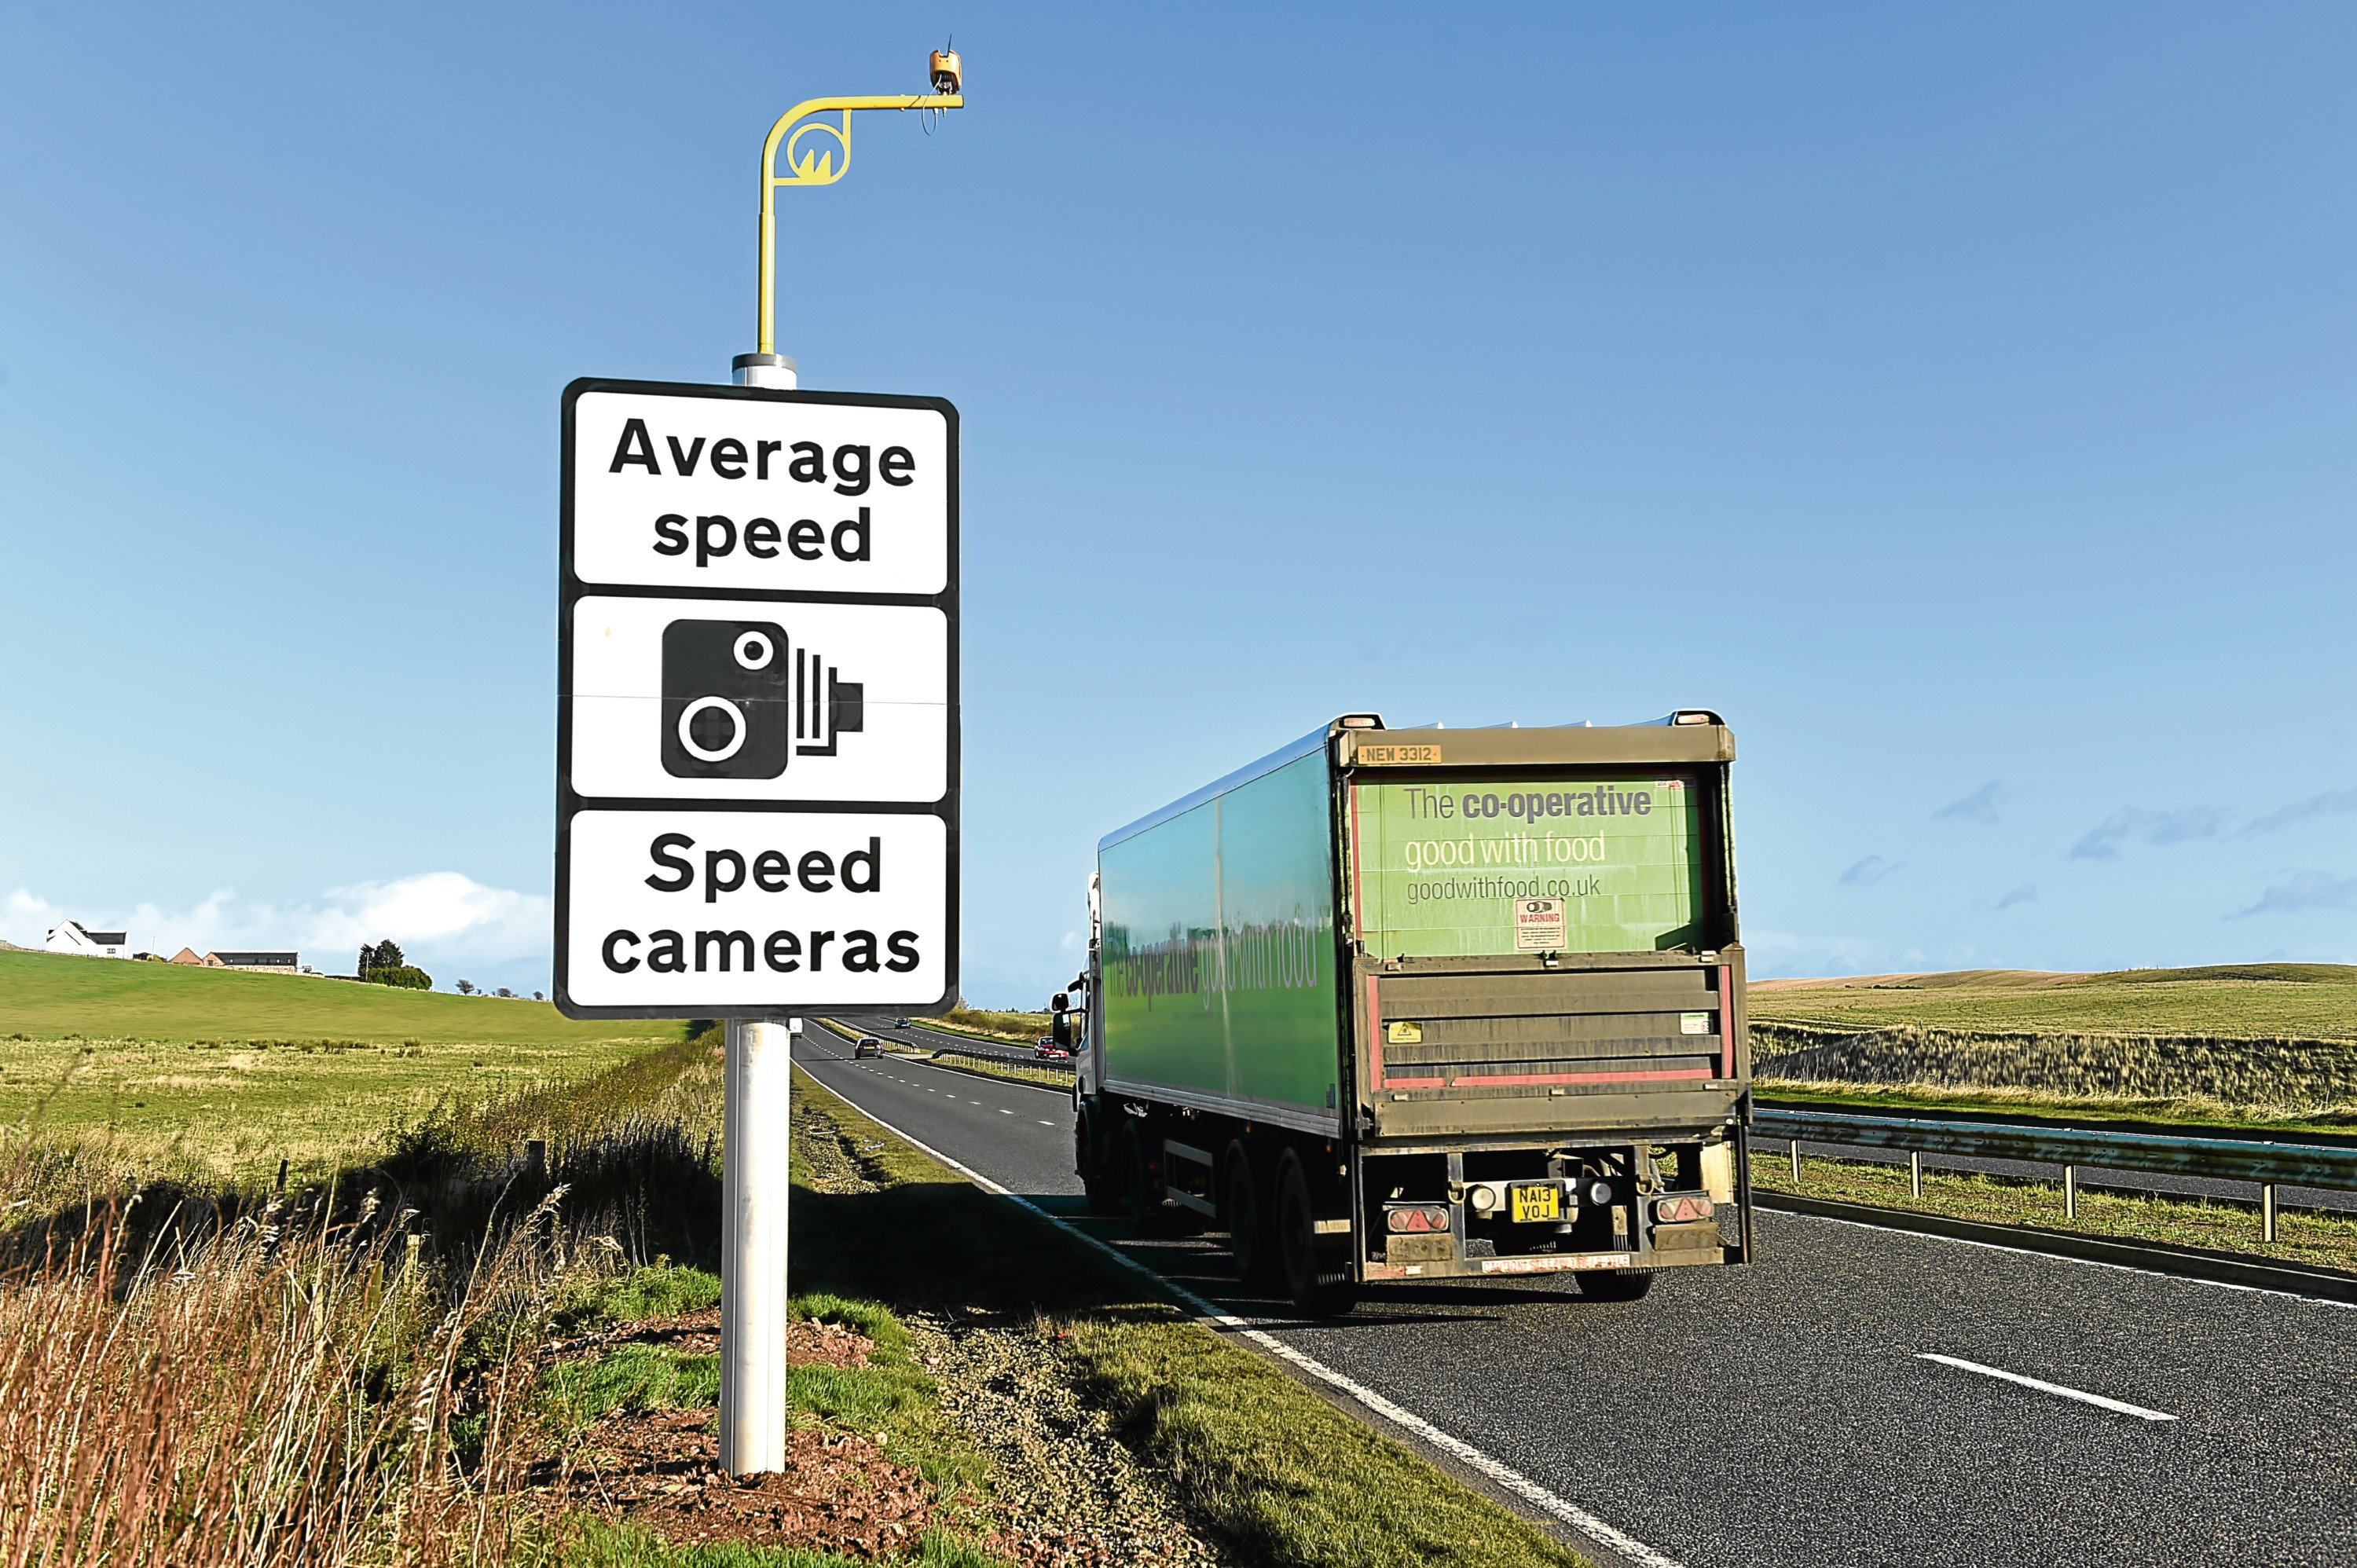 Average speed cameras are catching more speeders on the A90.